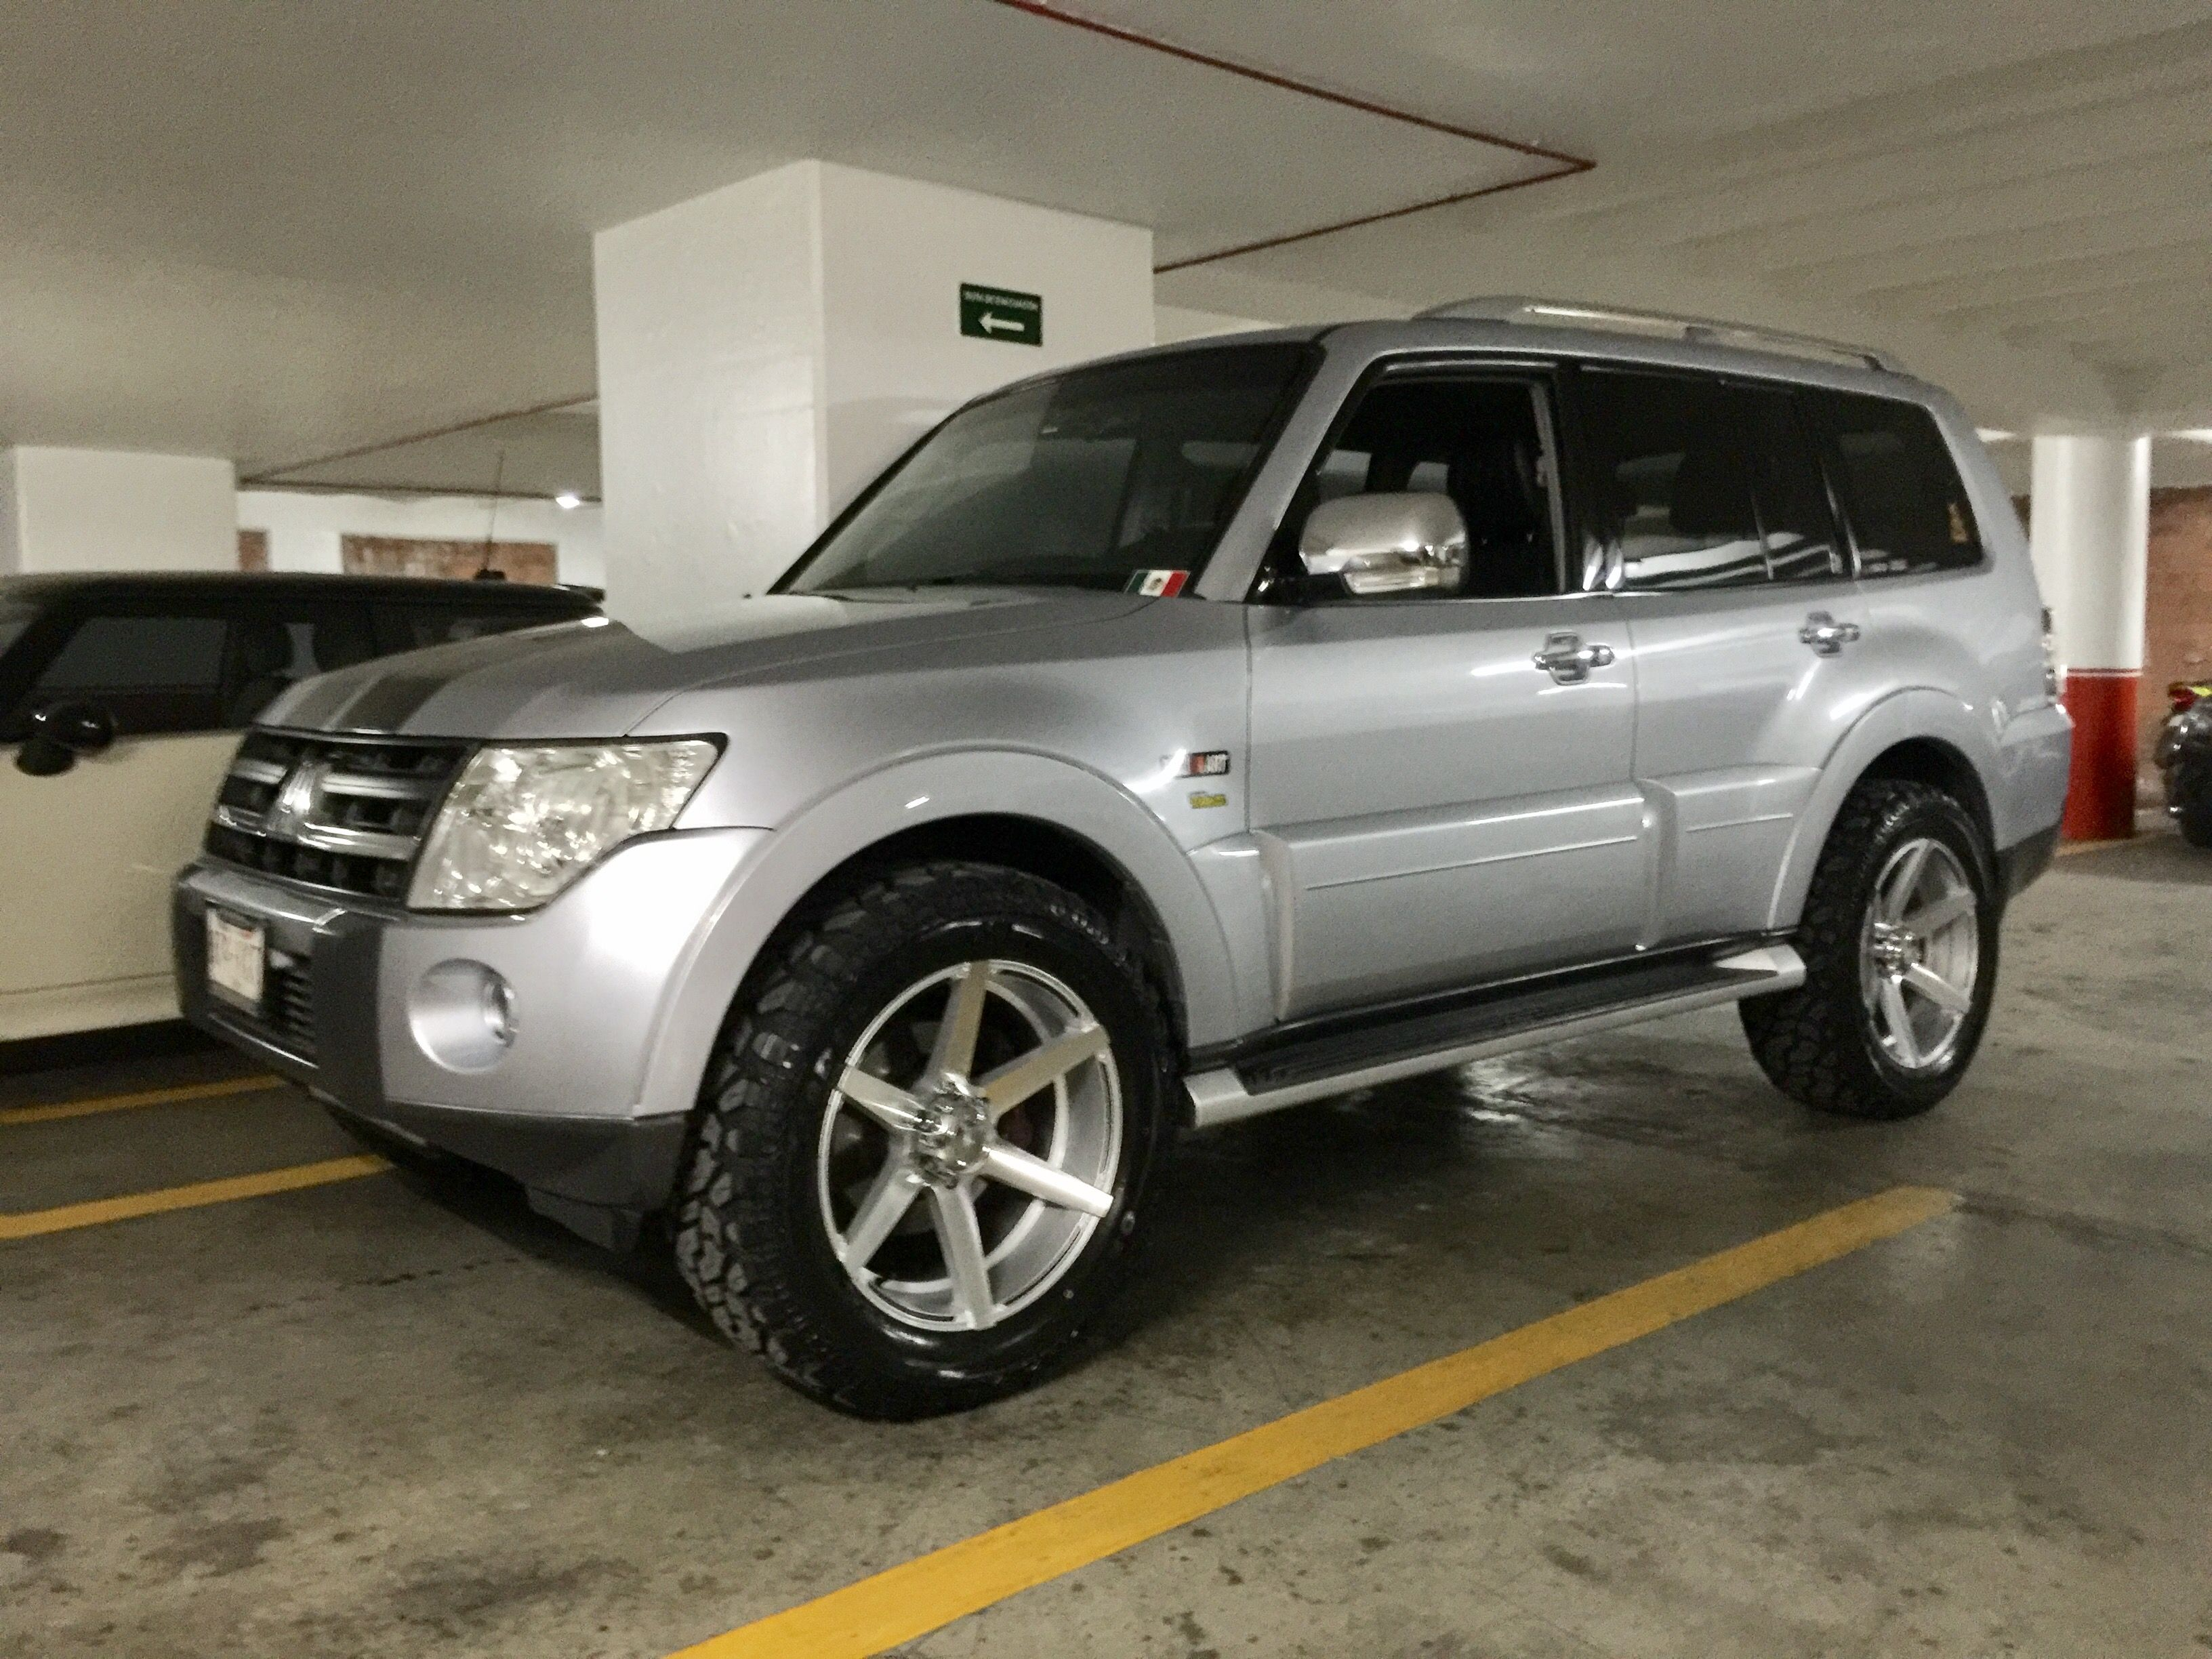 4d705f9311351982495be6dcf09ac4d2 Take A Look About Montero Sport 2002 with Exciting Images Cars Review